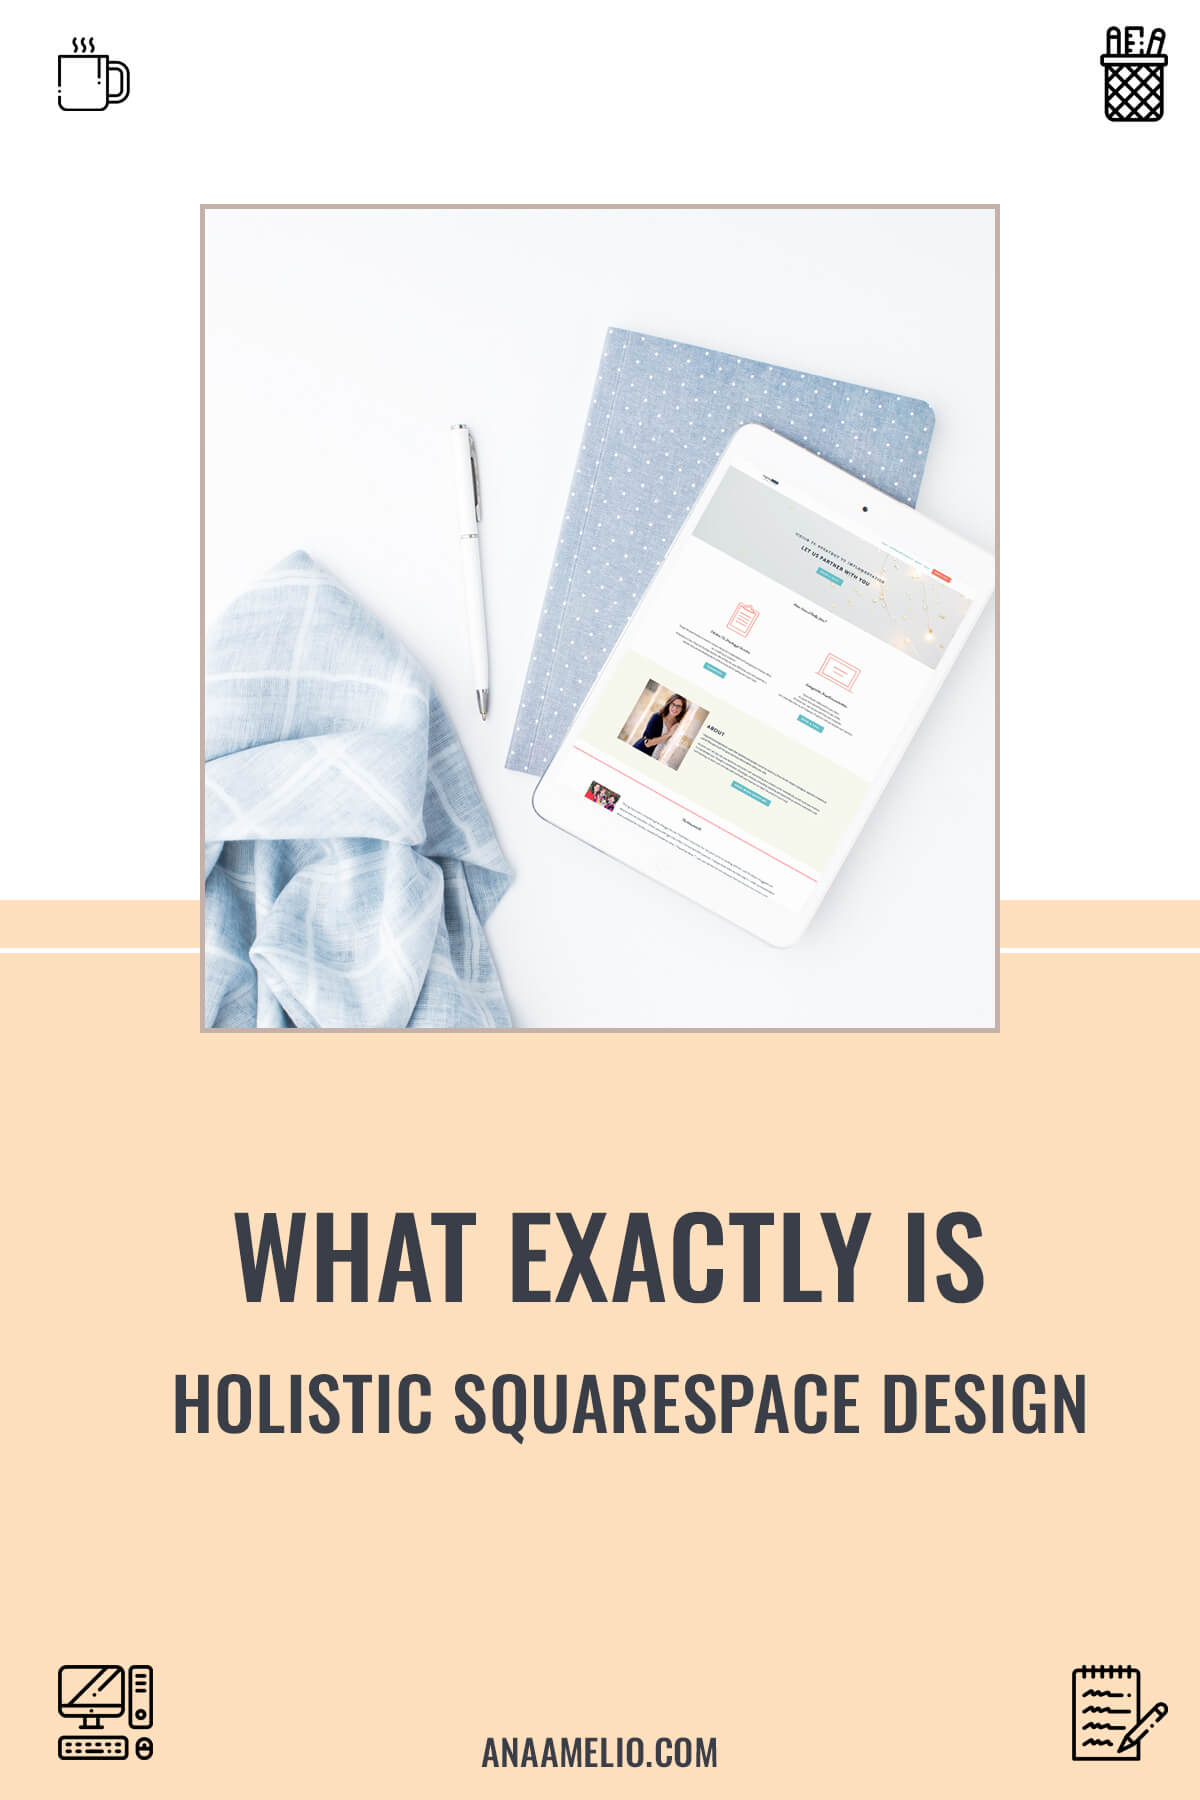 Learn how holistic design experience can get you booked out with the right clients so you can get out of the hustle mode and enjoy life more. #anaameliodesign #squarespacedesign